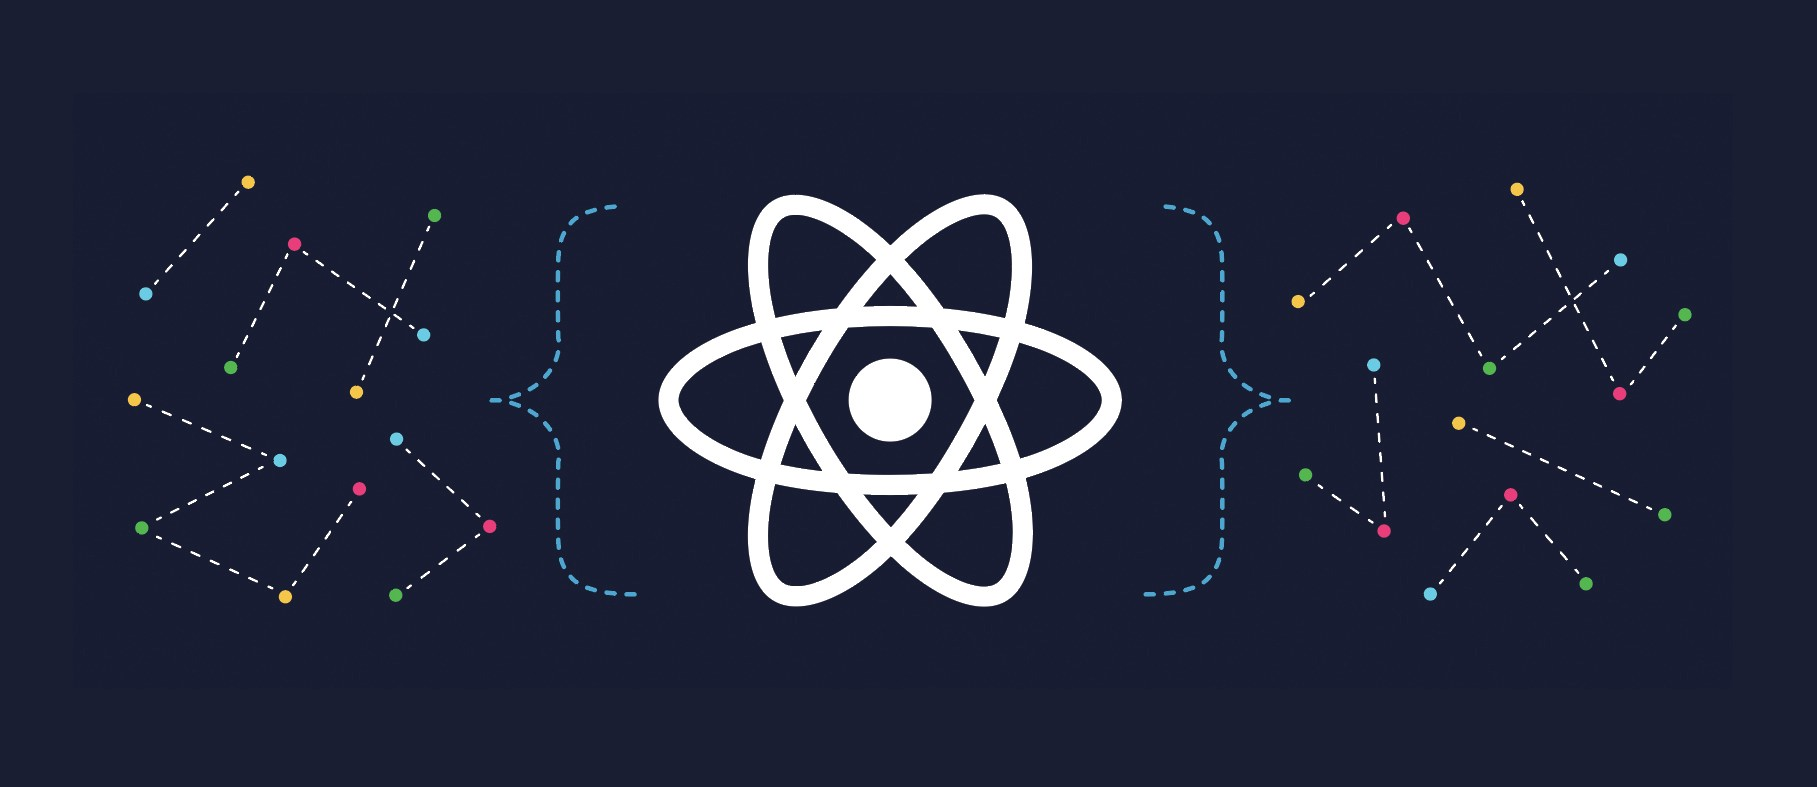 Groovy React Native Components  - Victor K Varghese - Medium